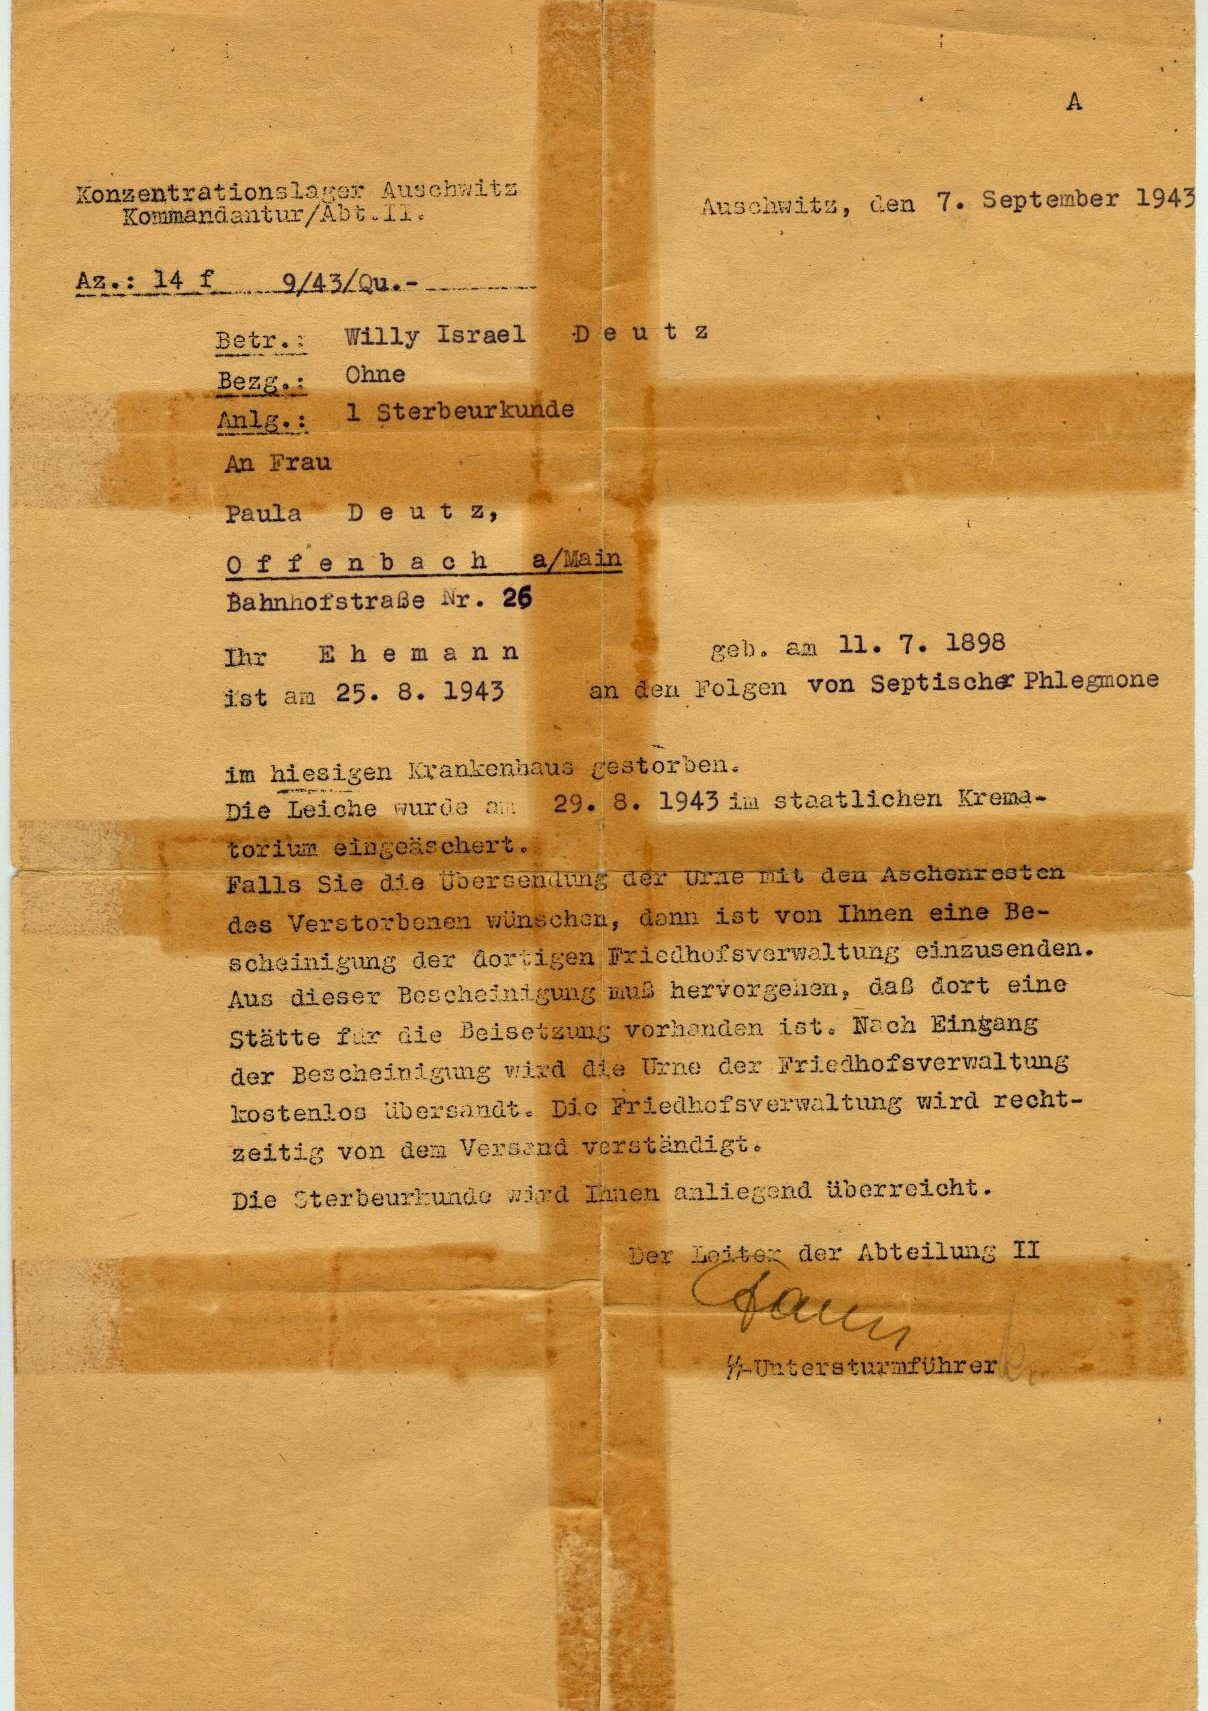 Death notice for Willy Deutz, Auschwitz concentration camp (Poland), September 7, 1943. Language: German.